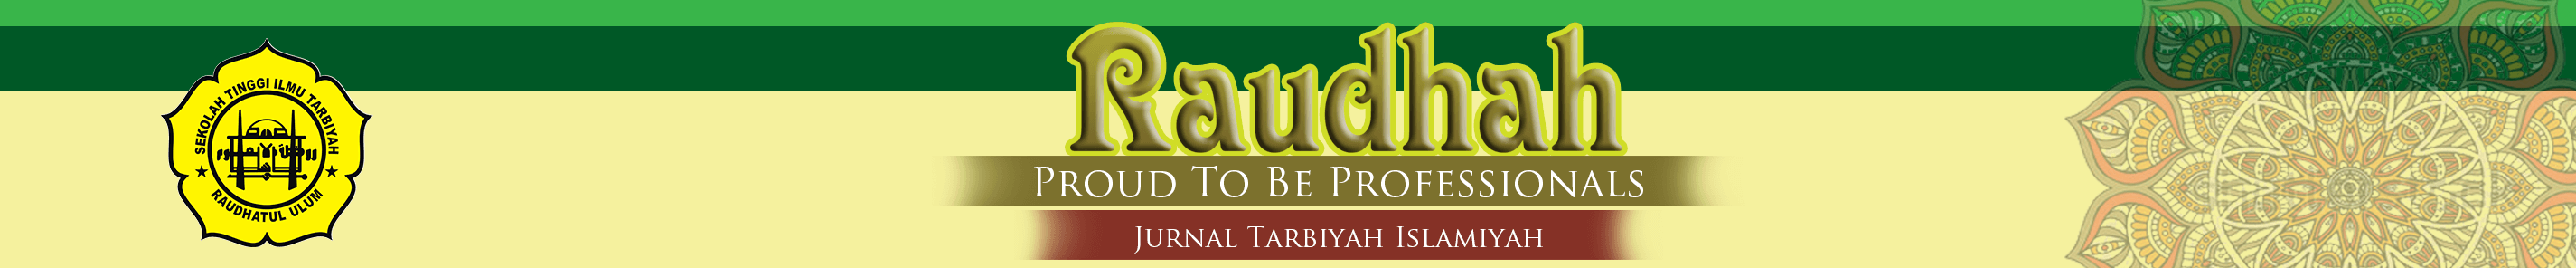 header-jurnal-raudhah